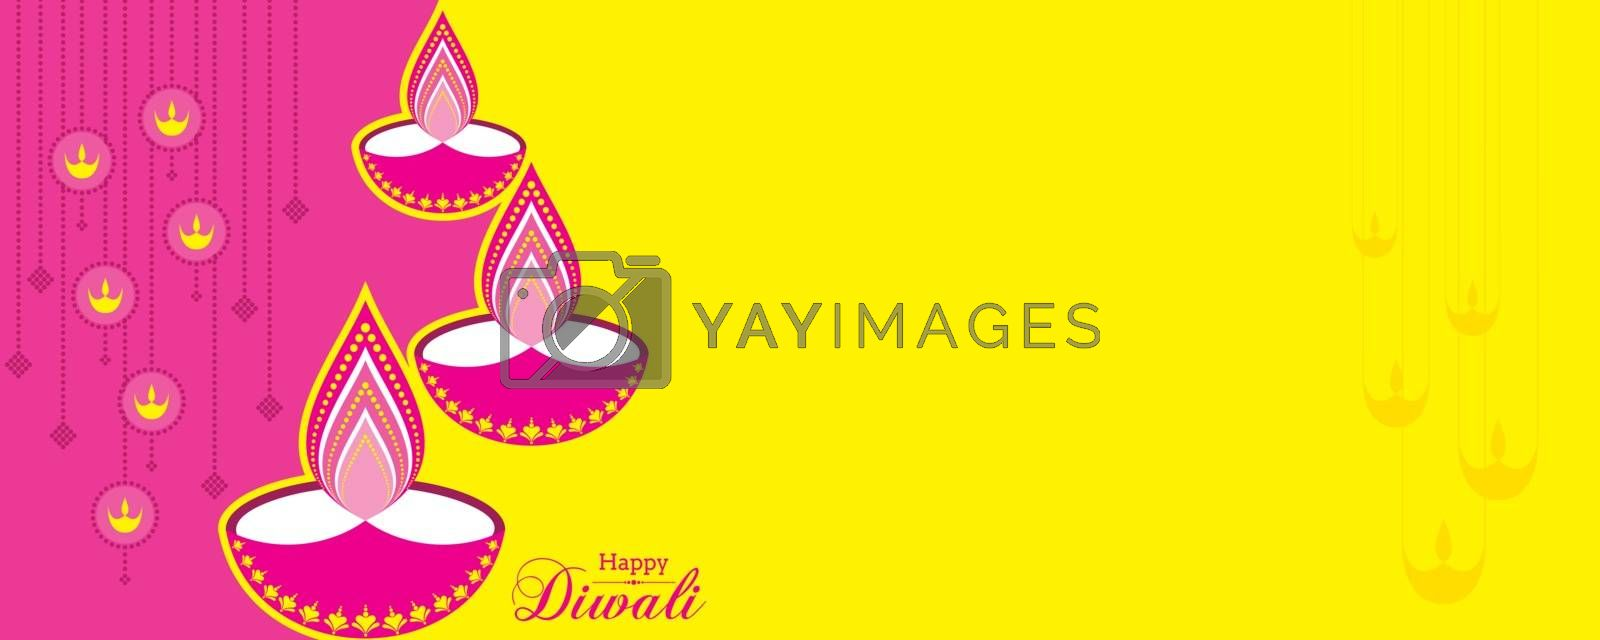 Illustration of Happy Diwali Greeting by graphicsdunia4you